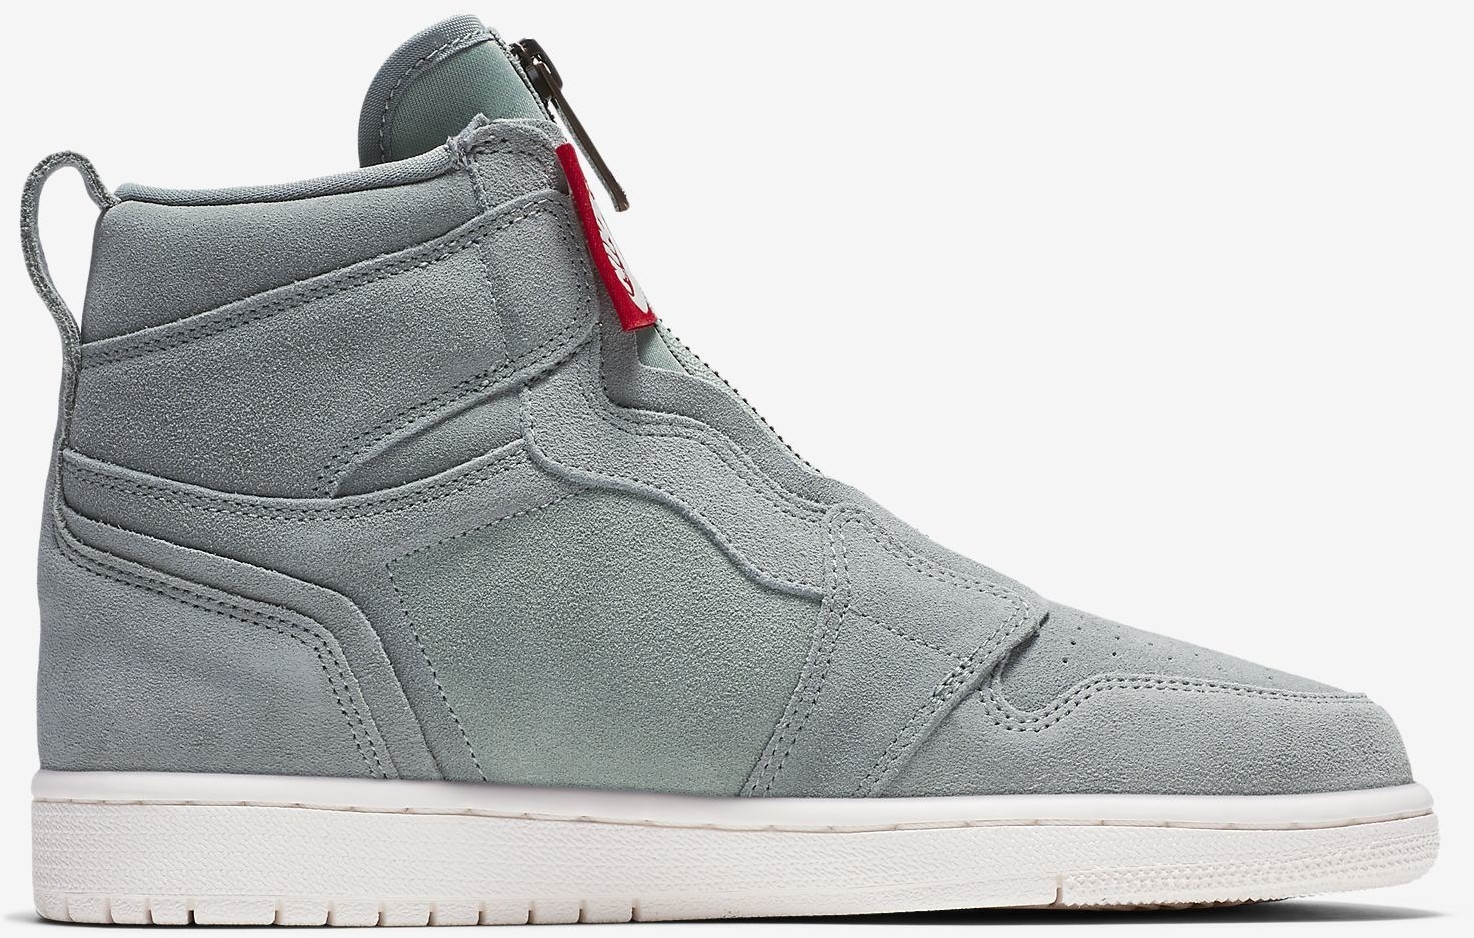 888a50f6f24 Nike Air Jordan 1 High Zip Wmns mica green sail metallic red bronze. à  partir de ...